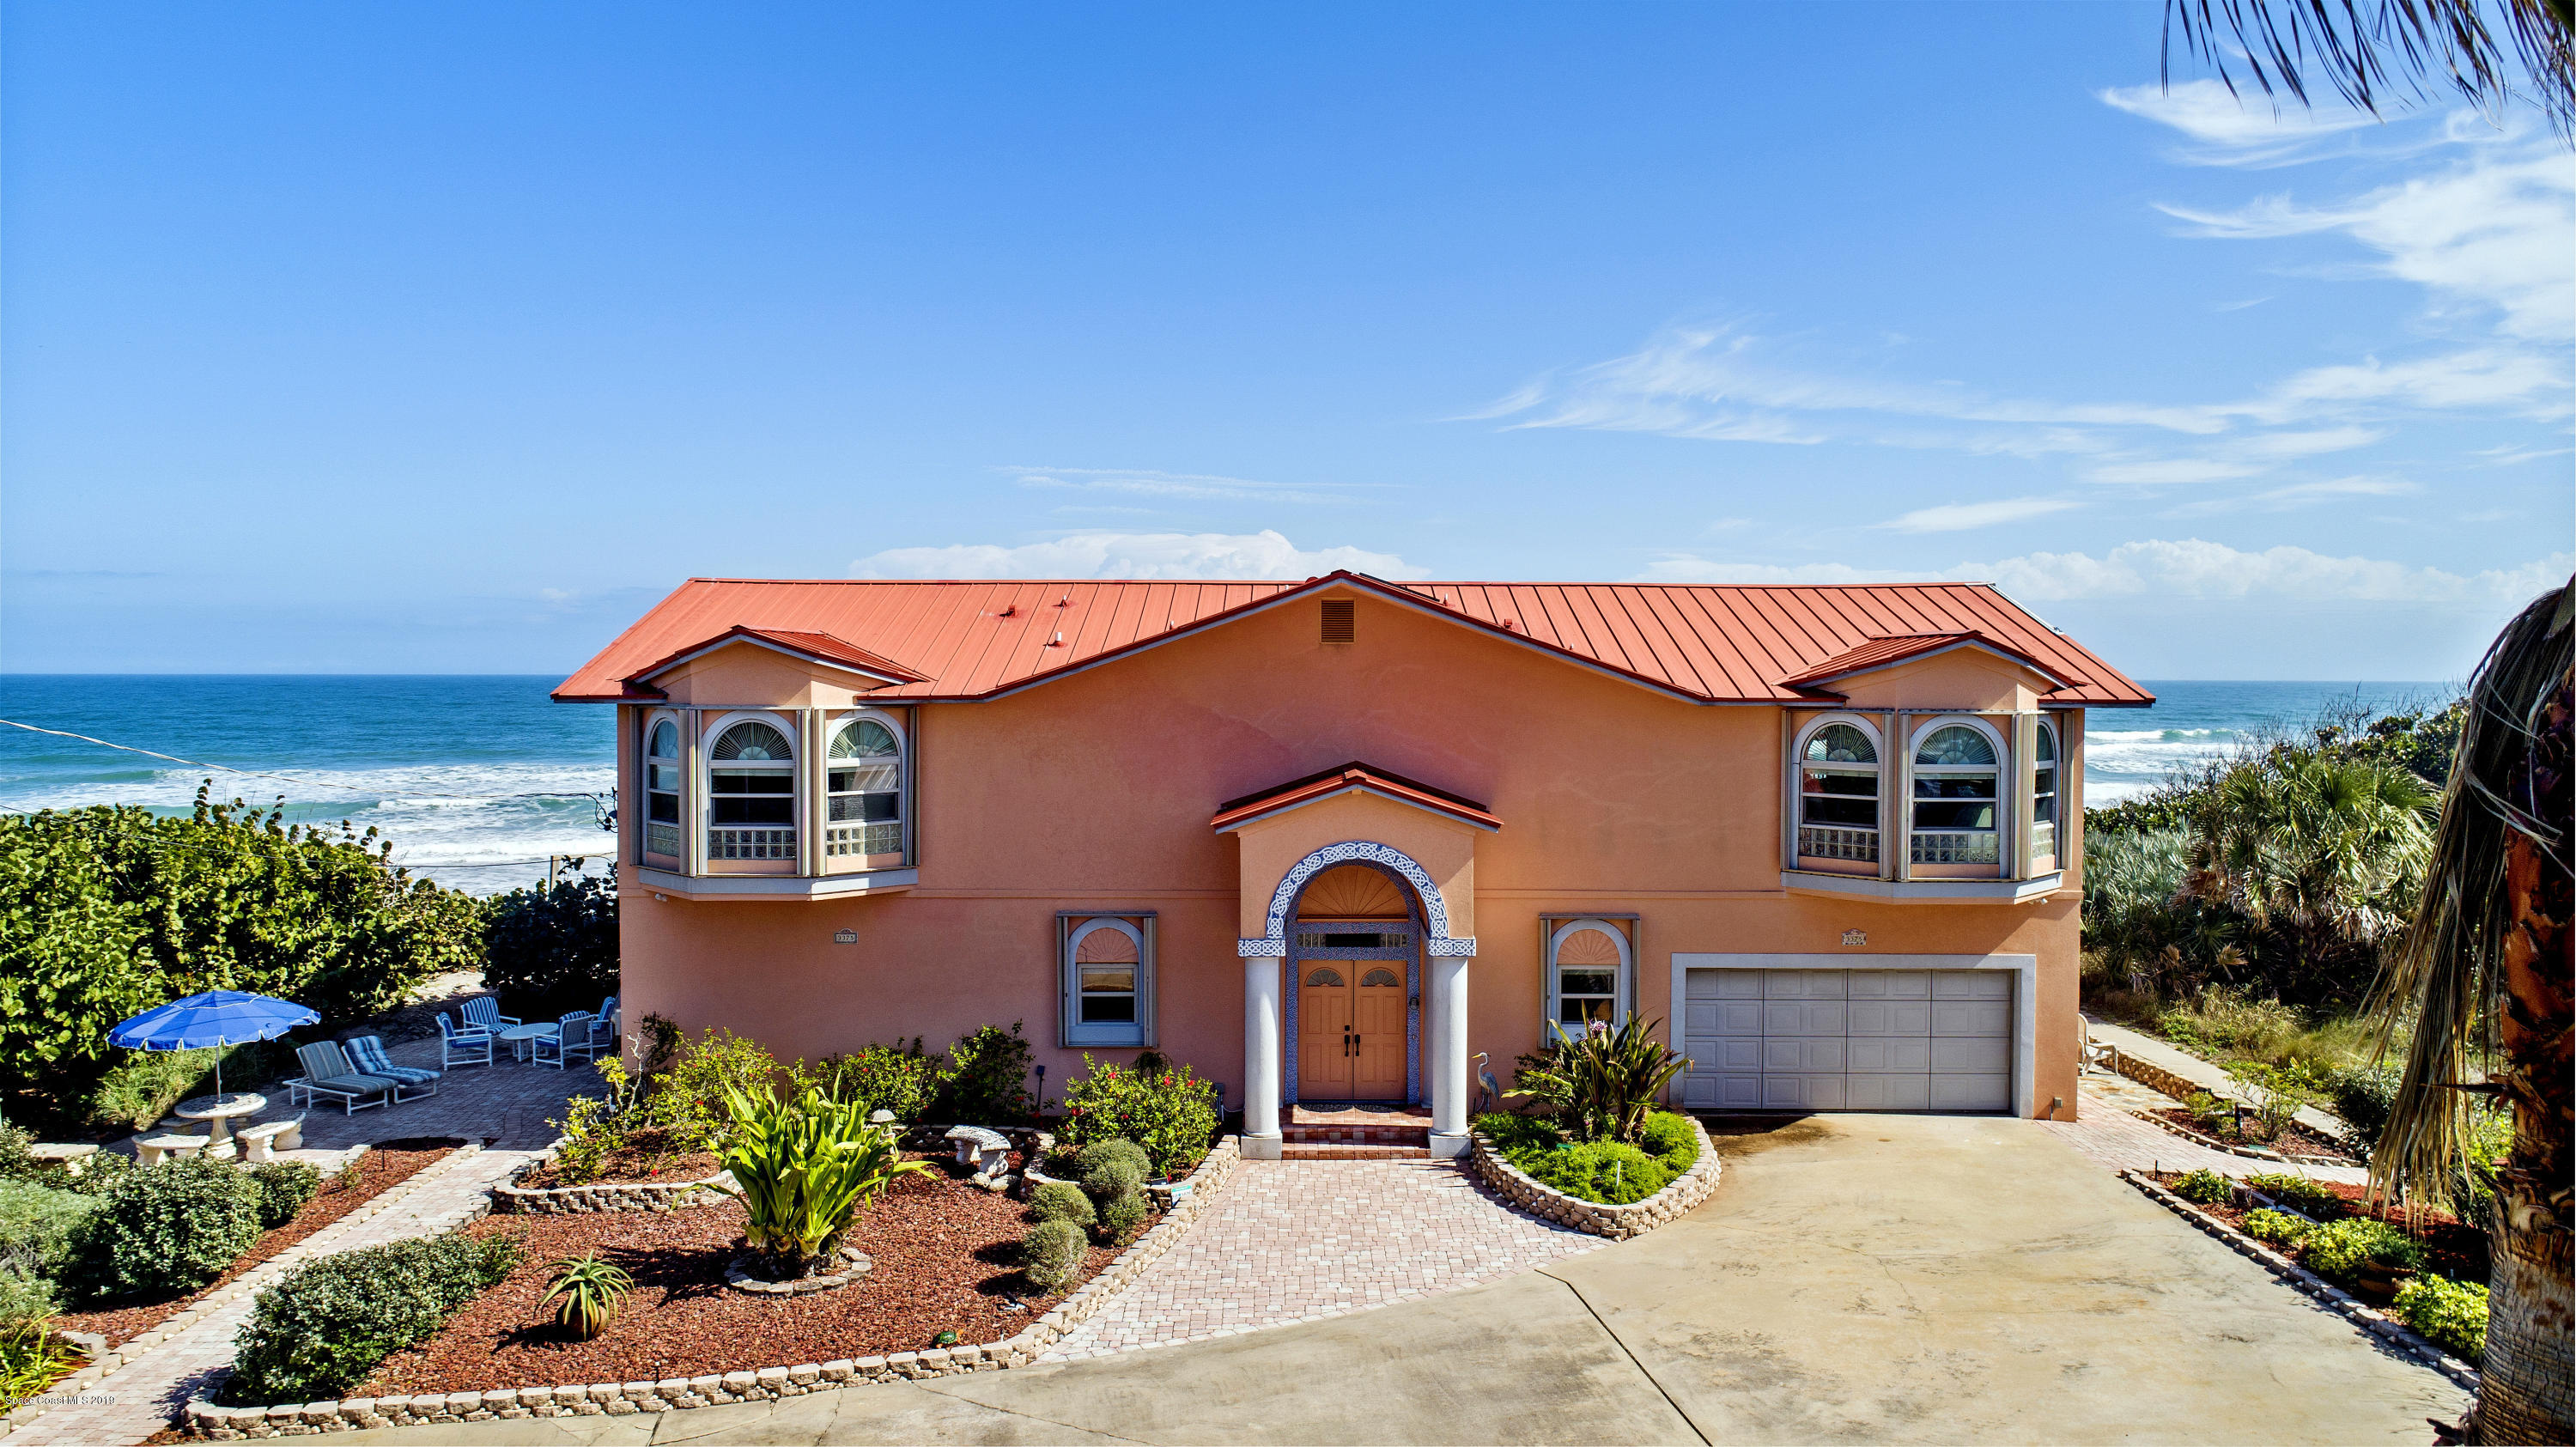 Multi-Family Homes for Sale at 3375 S Highway A1a Melbourne Beach, Florida 32951 United States